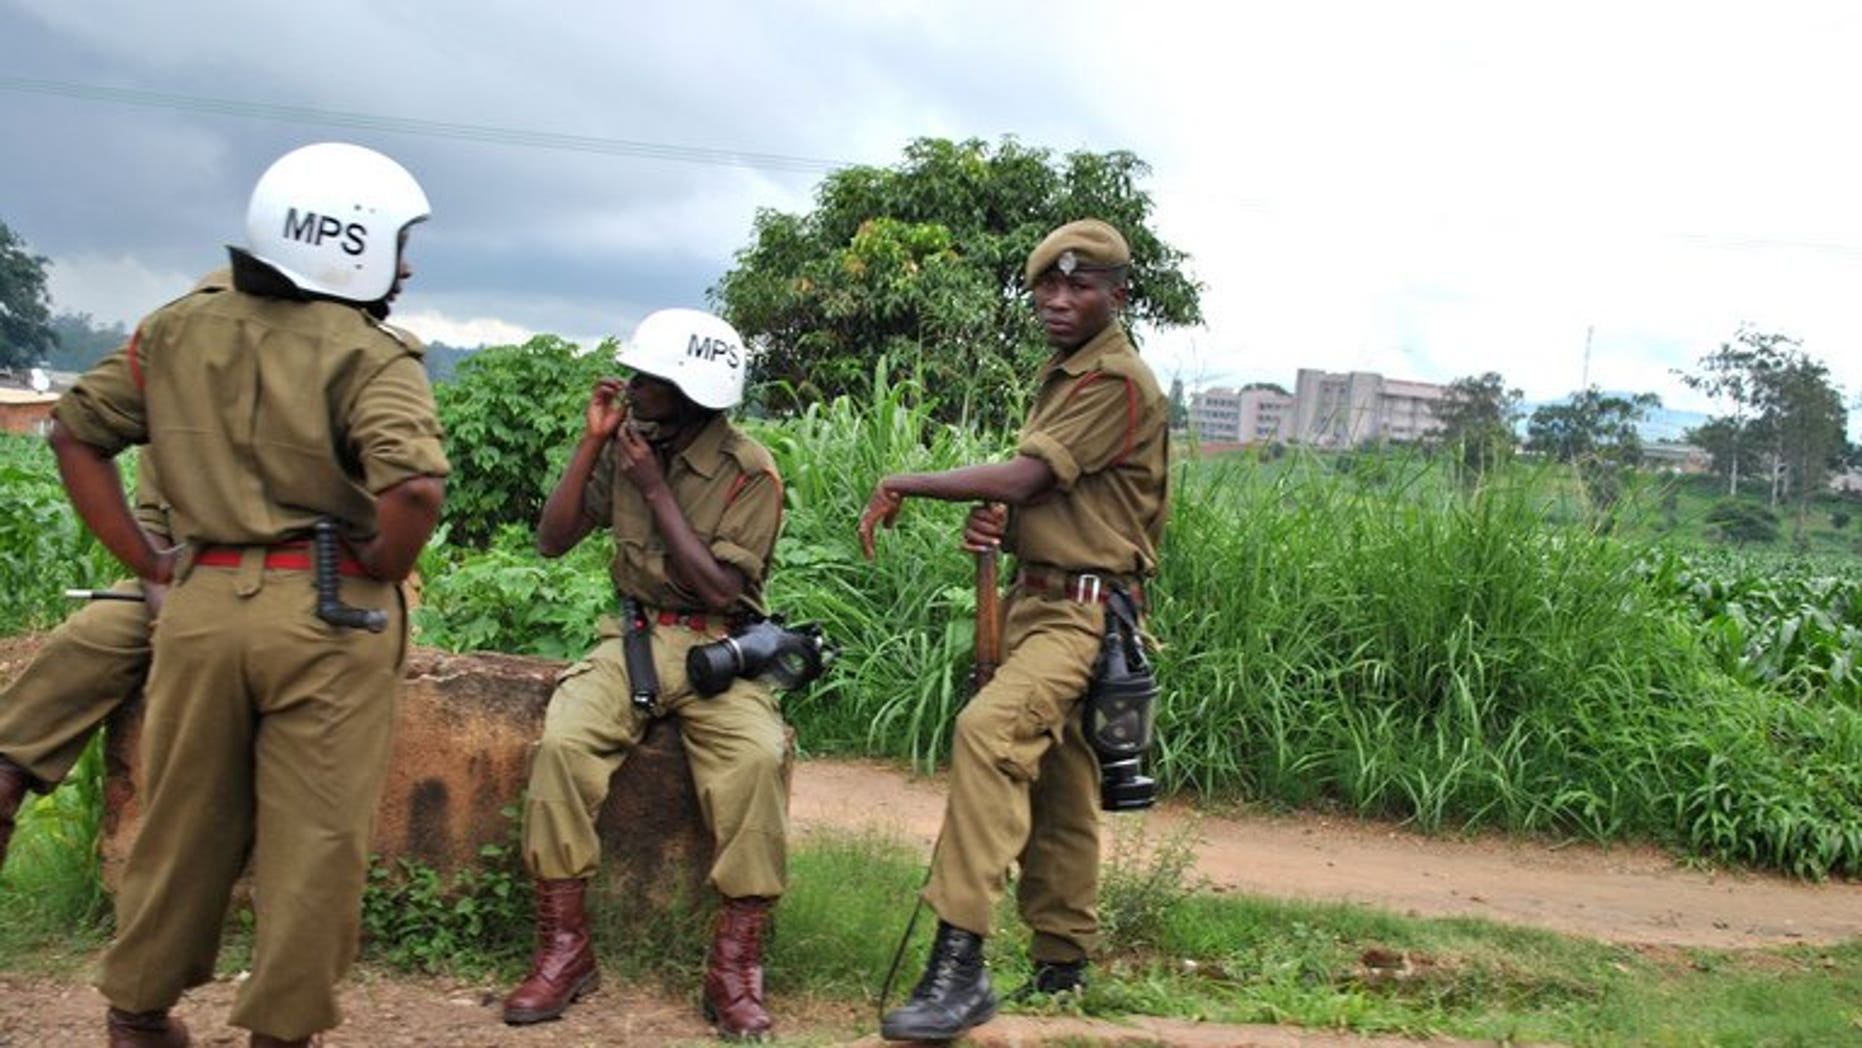 Police officers rest near a market in Blantyre on January 17, 2013. A court in Malawi has jailed nine senior police officers to 14 years each for fraud.